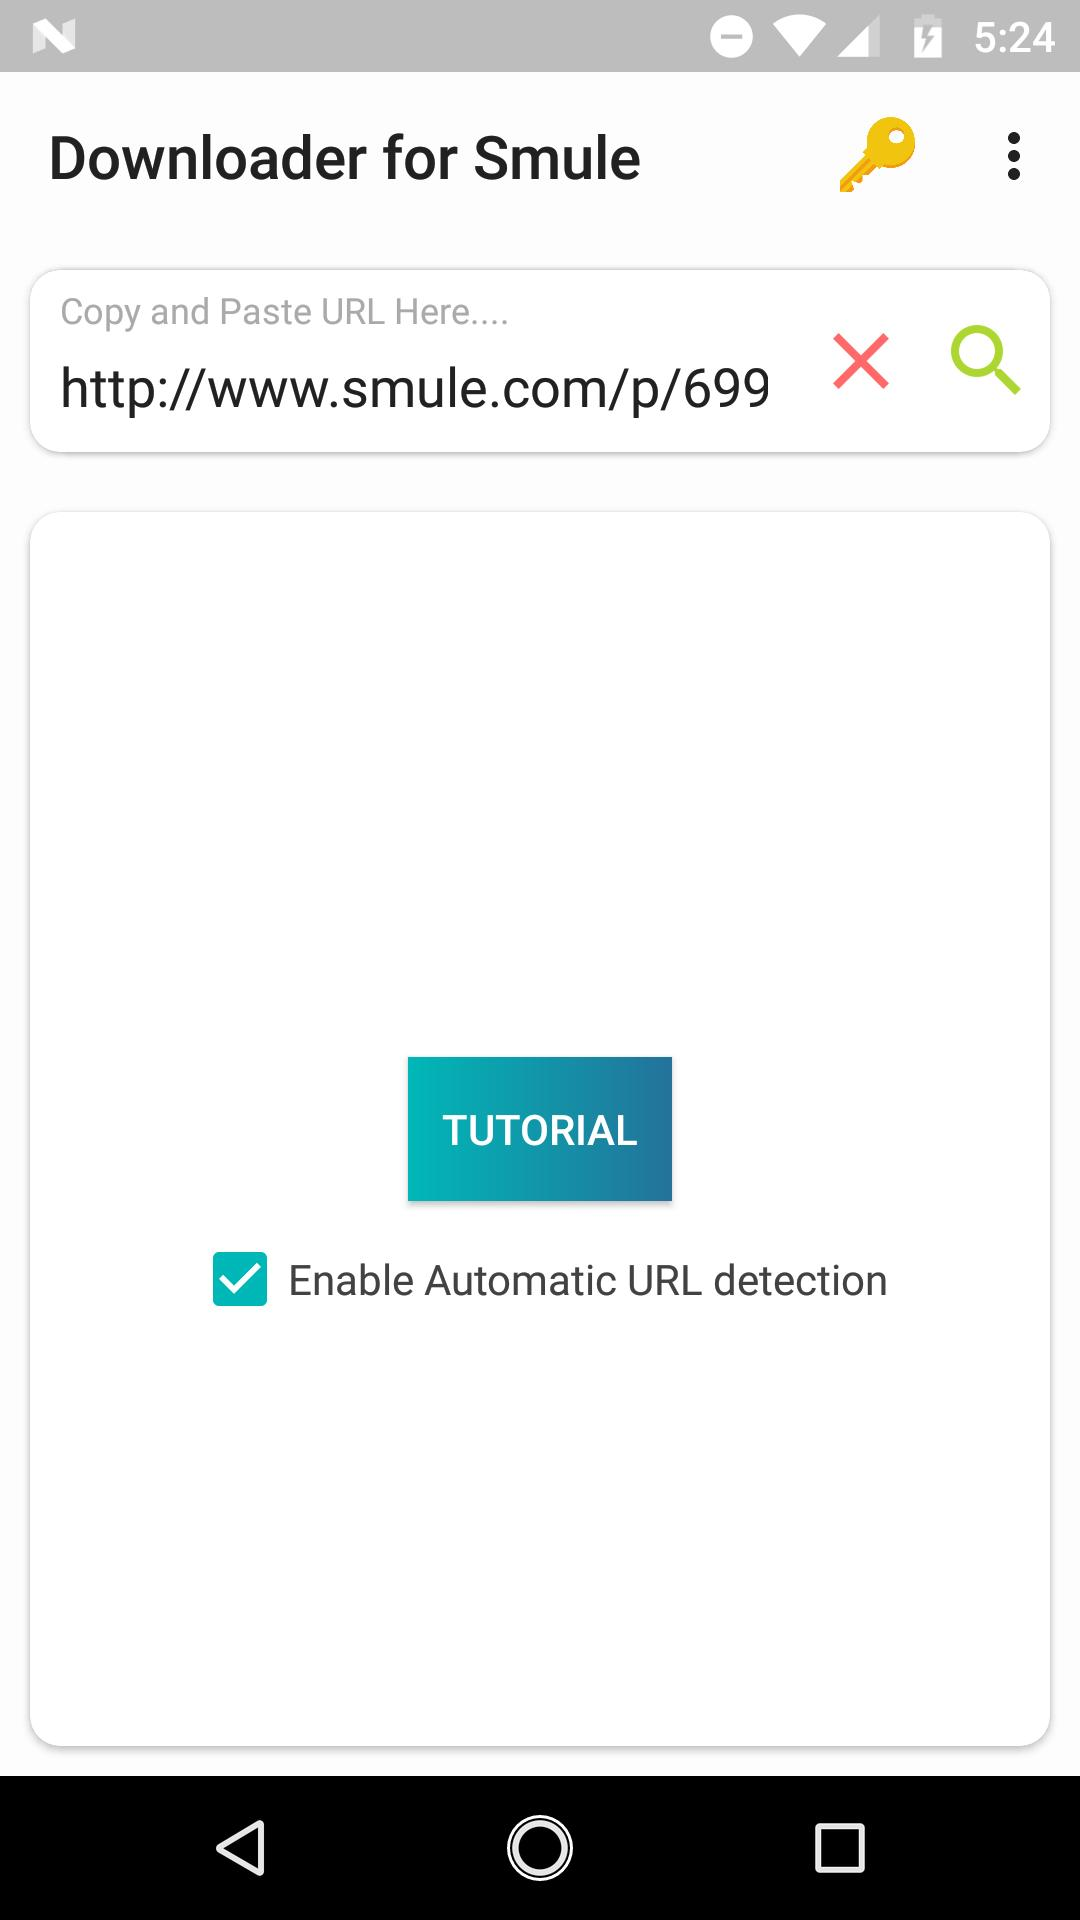 Downloader for Smule for Android - APK Download